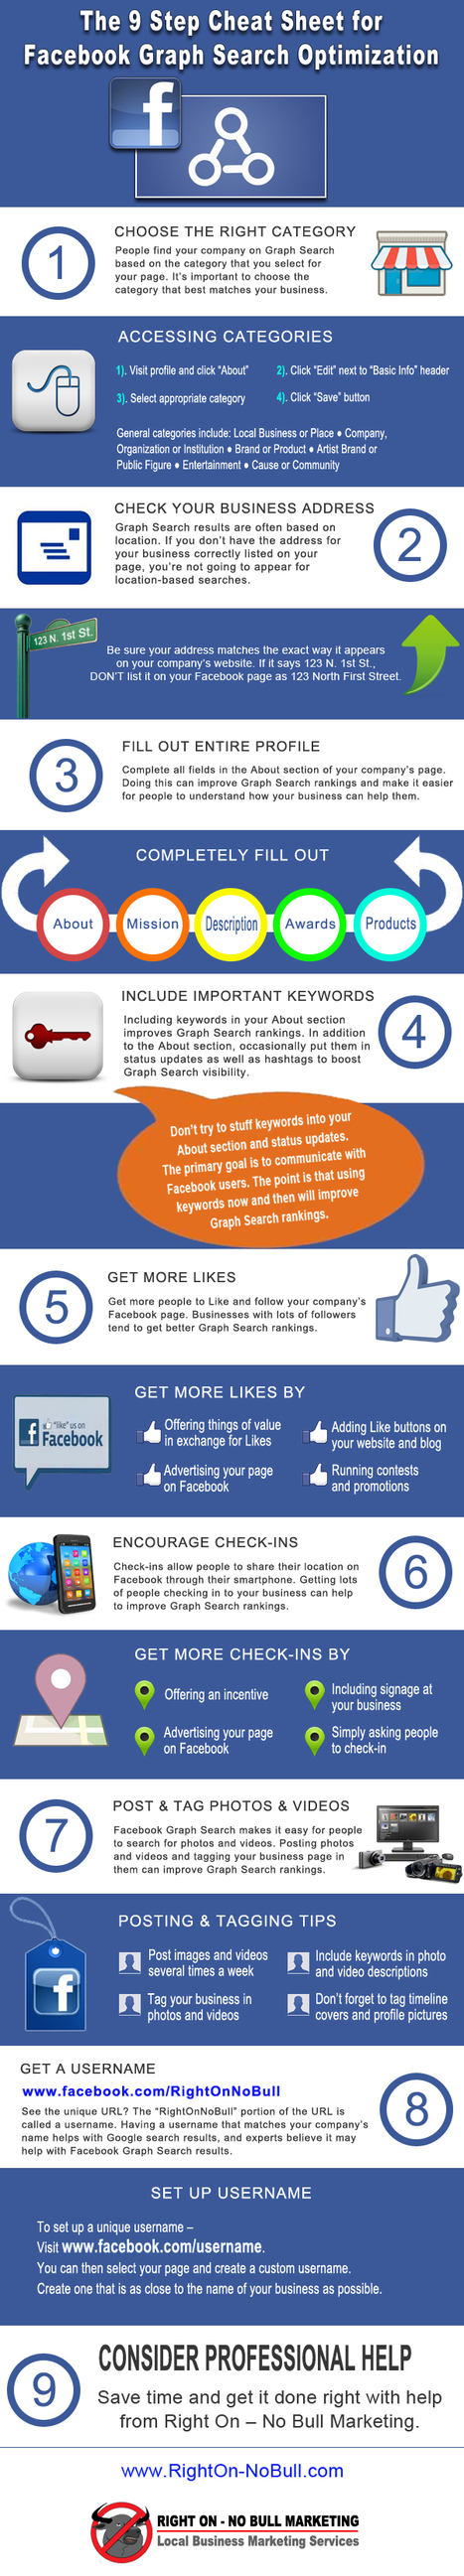 9 Steps for Facebook Graph Search Optimization [INFOGRAPHIC] | Social Media Tips & News | Scoop.it